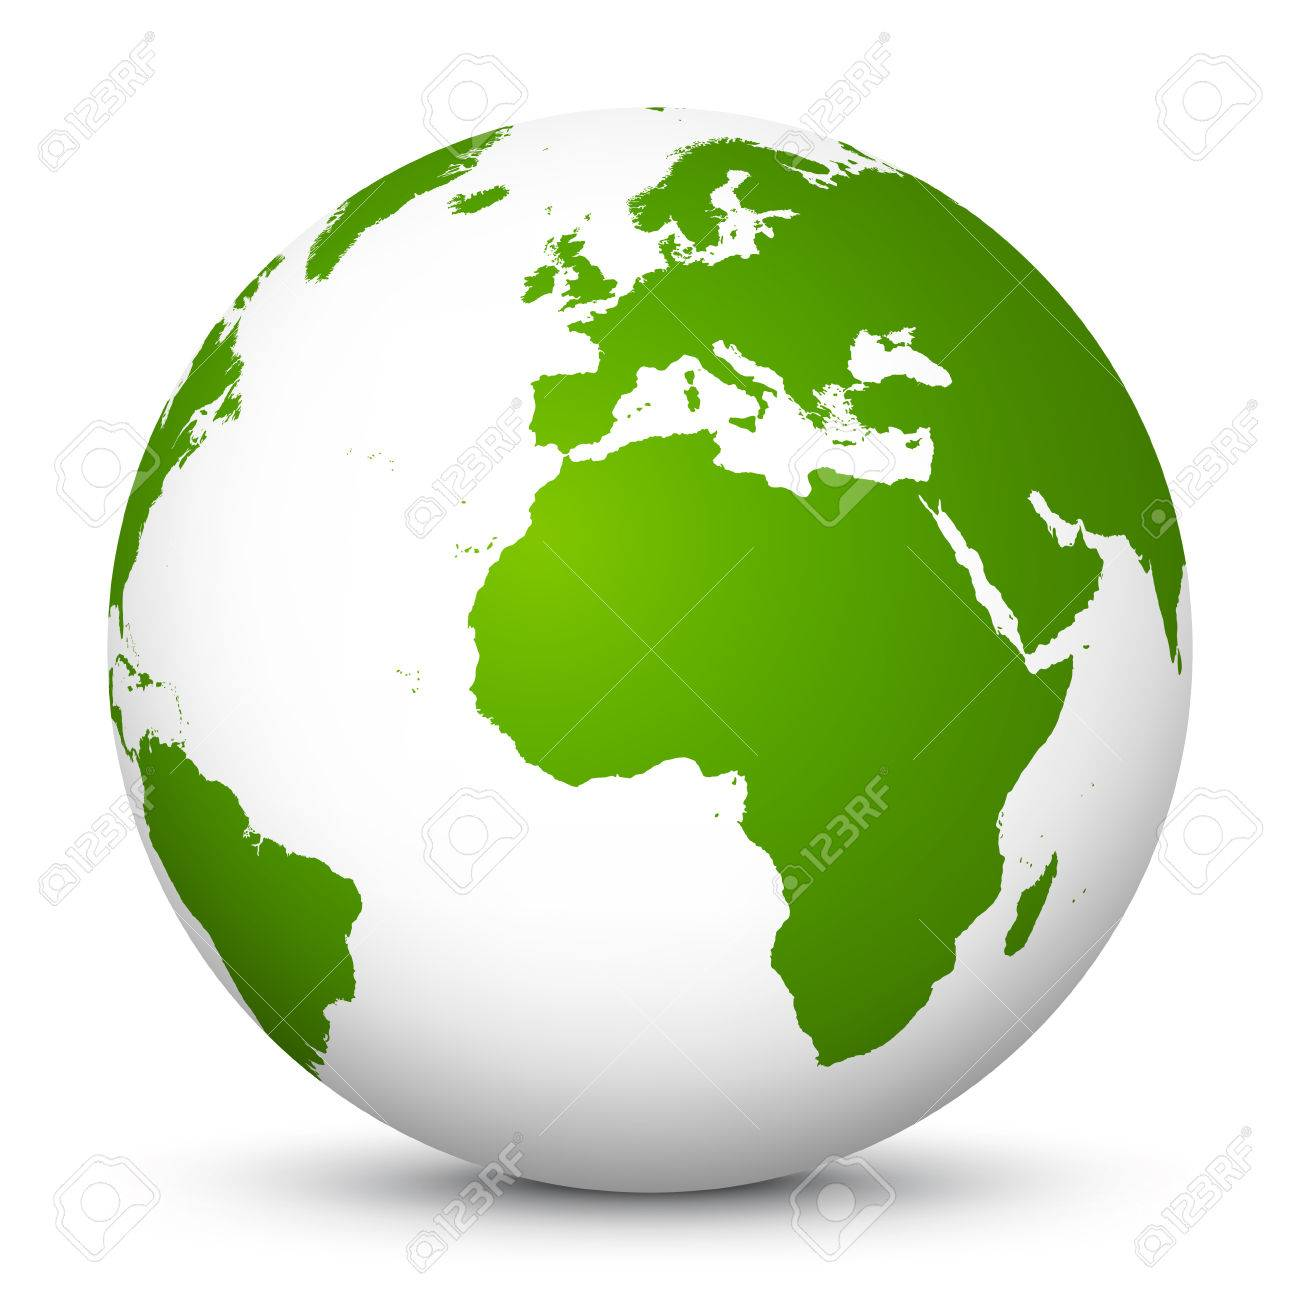 White Vector Globe Icon With Green Continents Planet Earth Stock